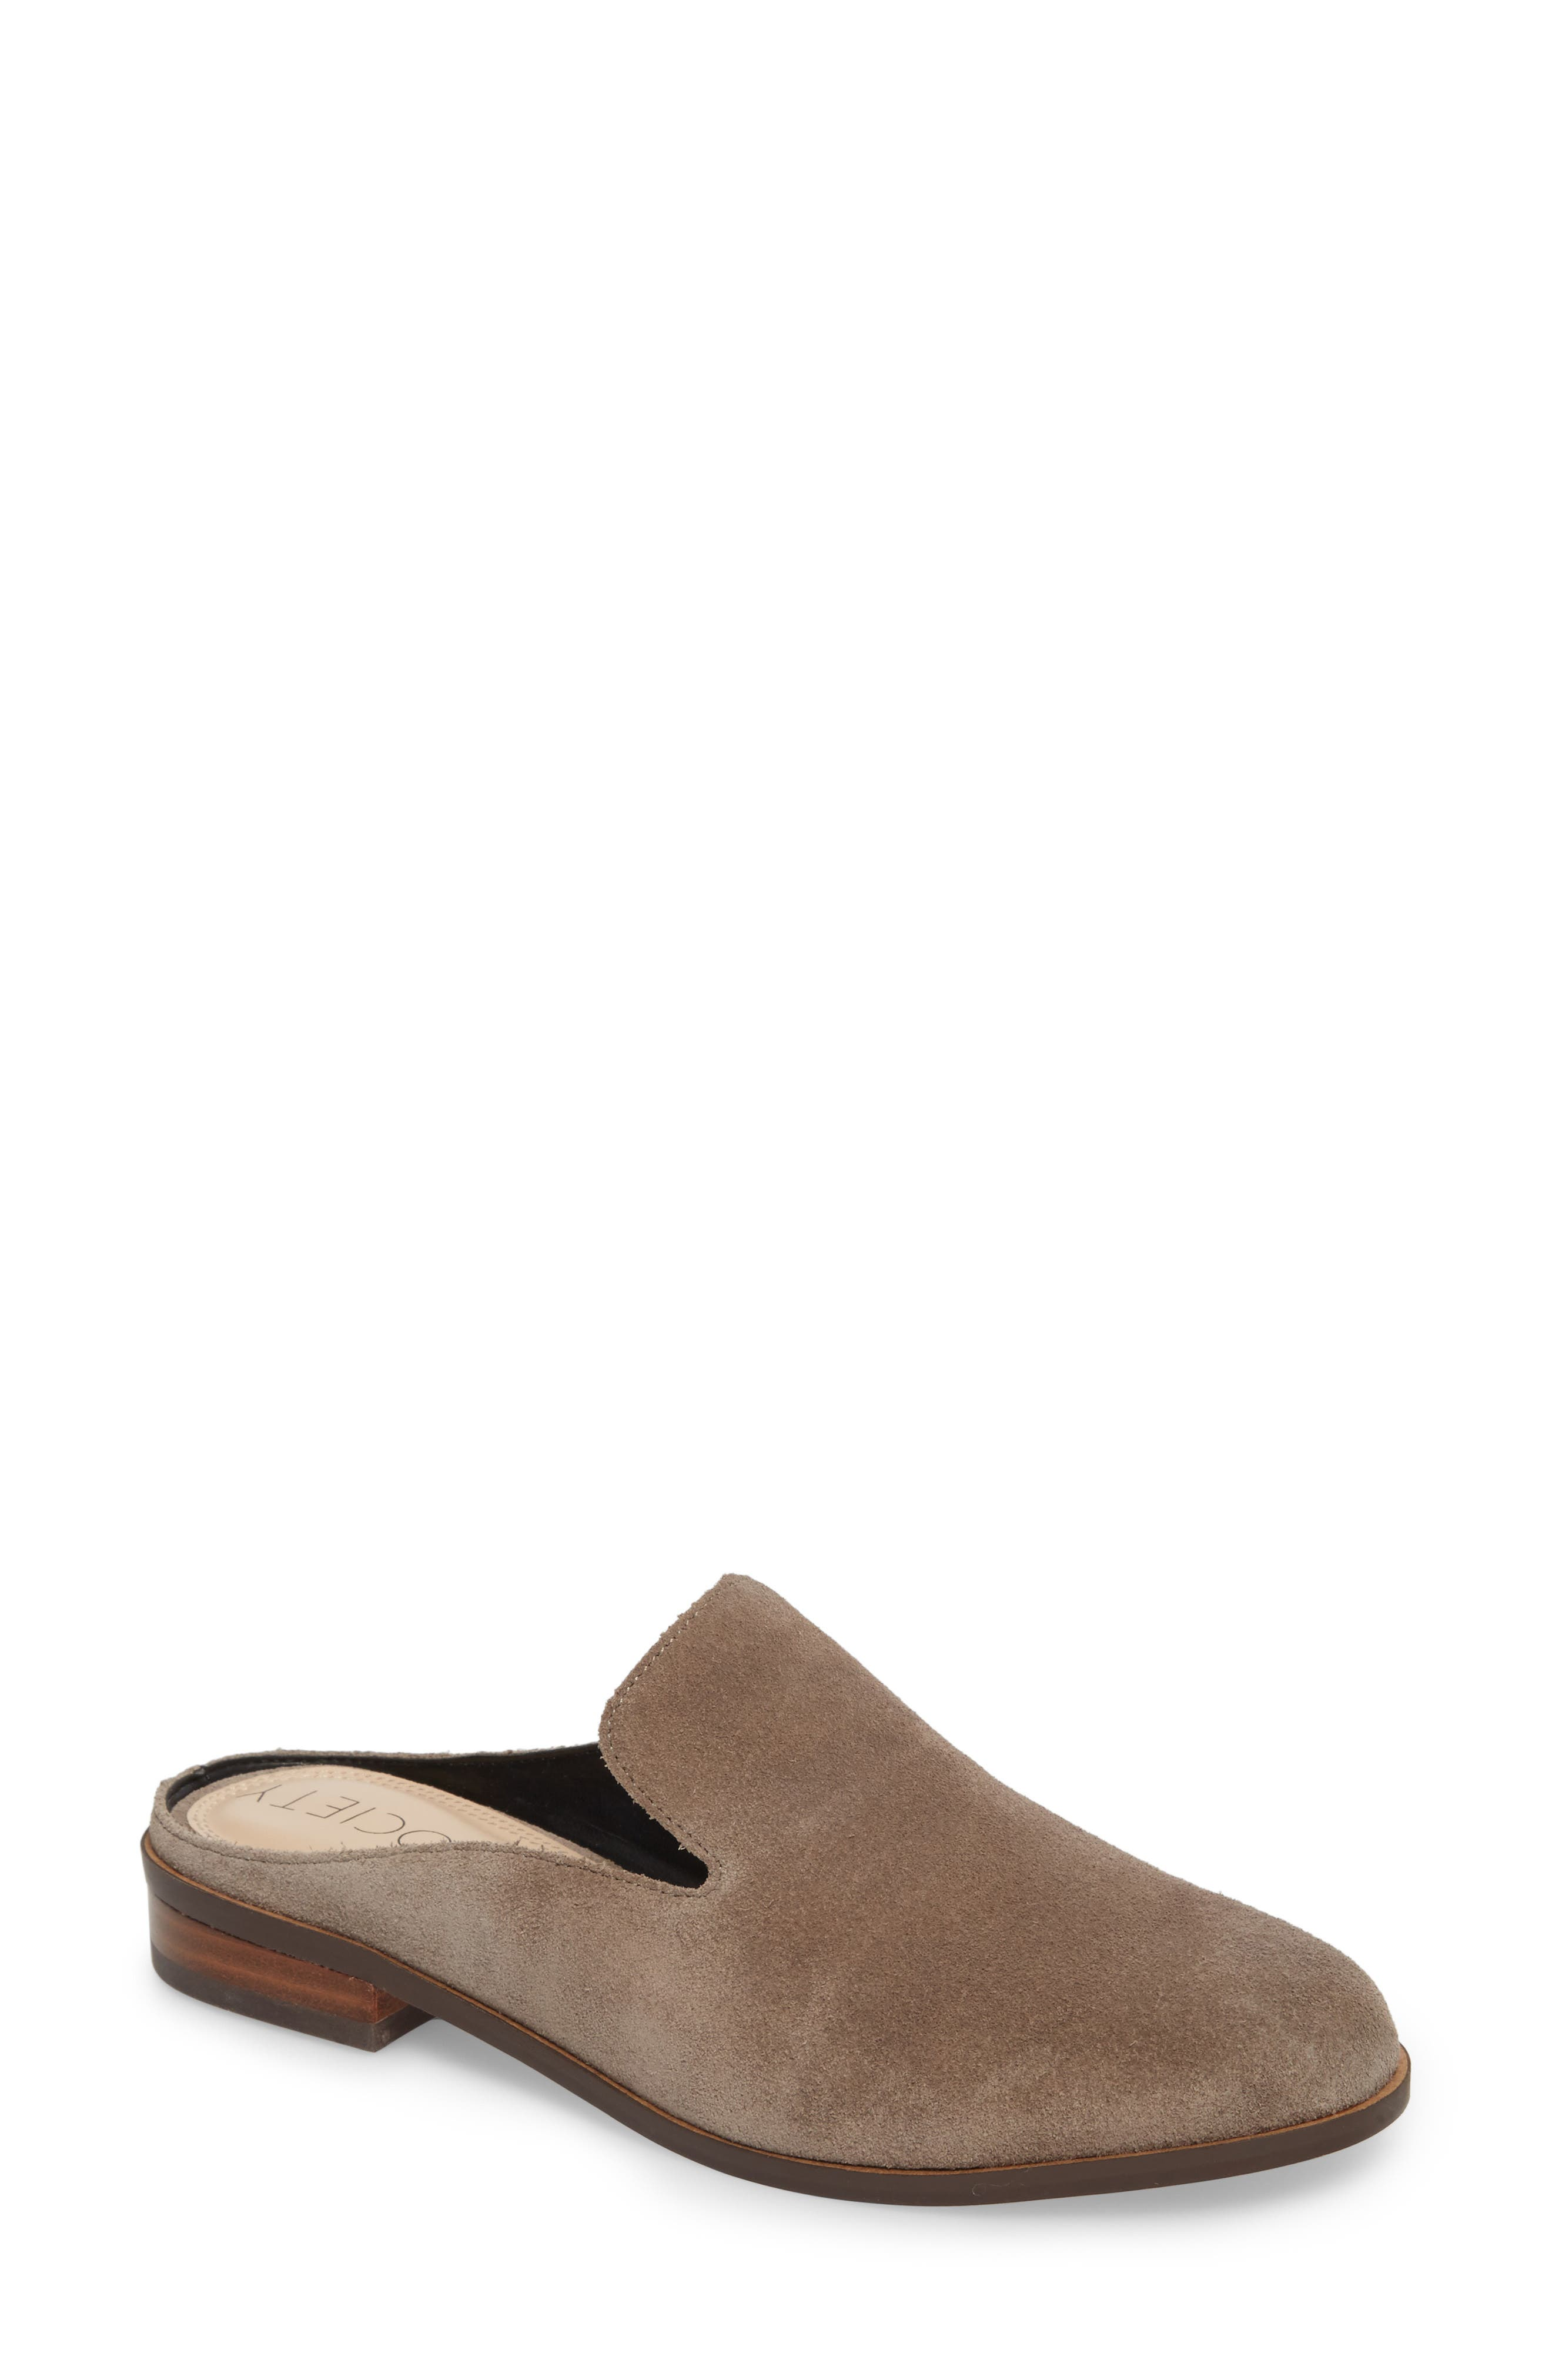 Main Image - Sole Society Esther Loafer Mule (Women)